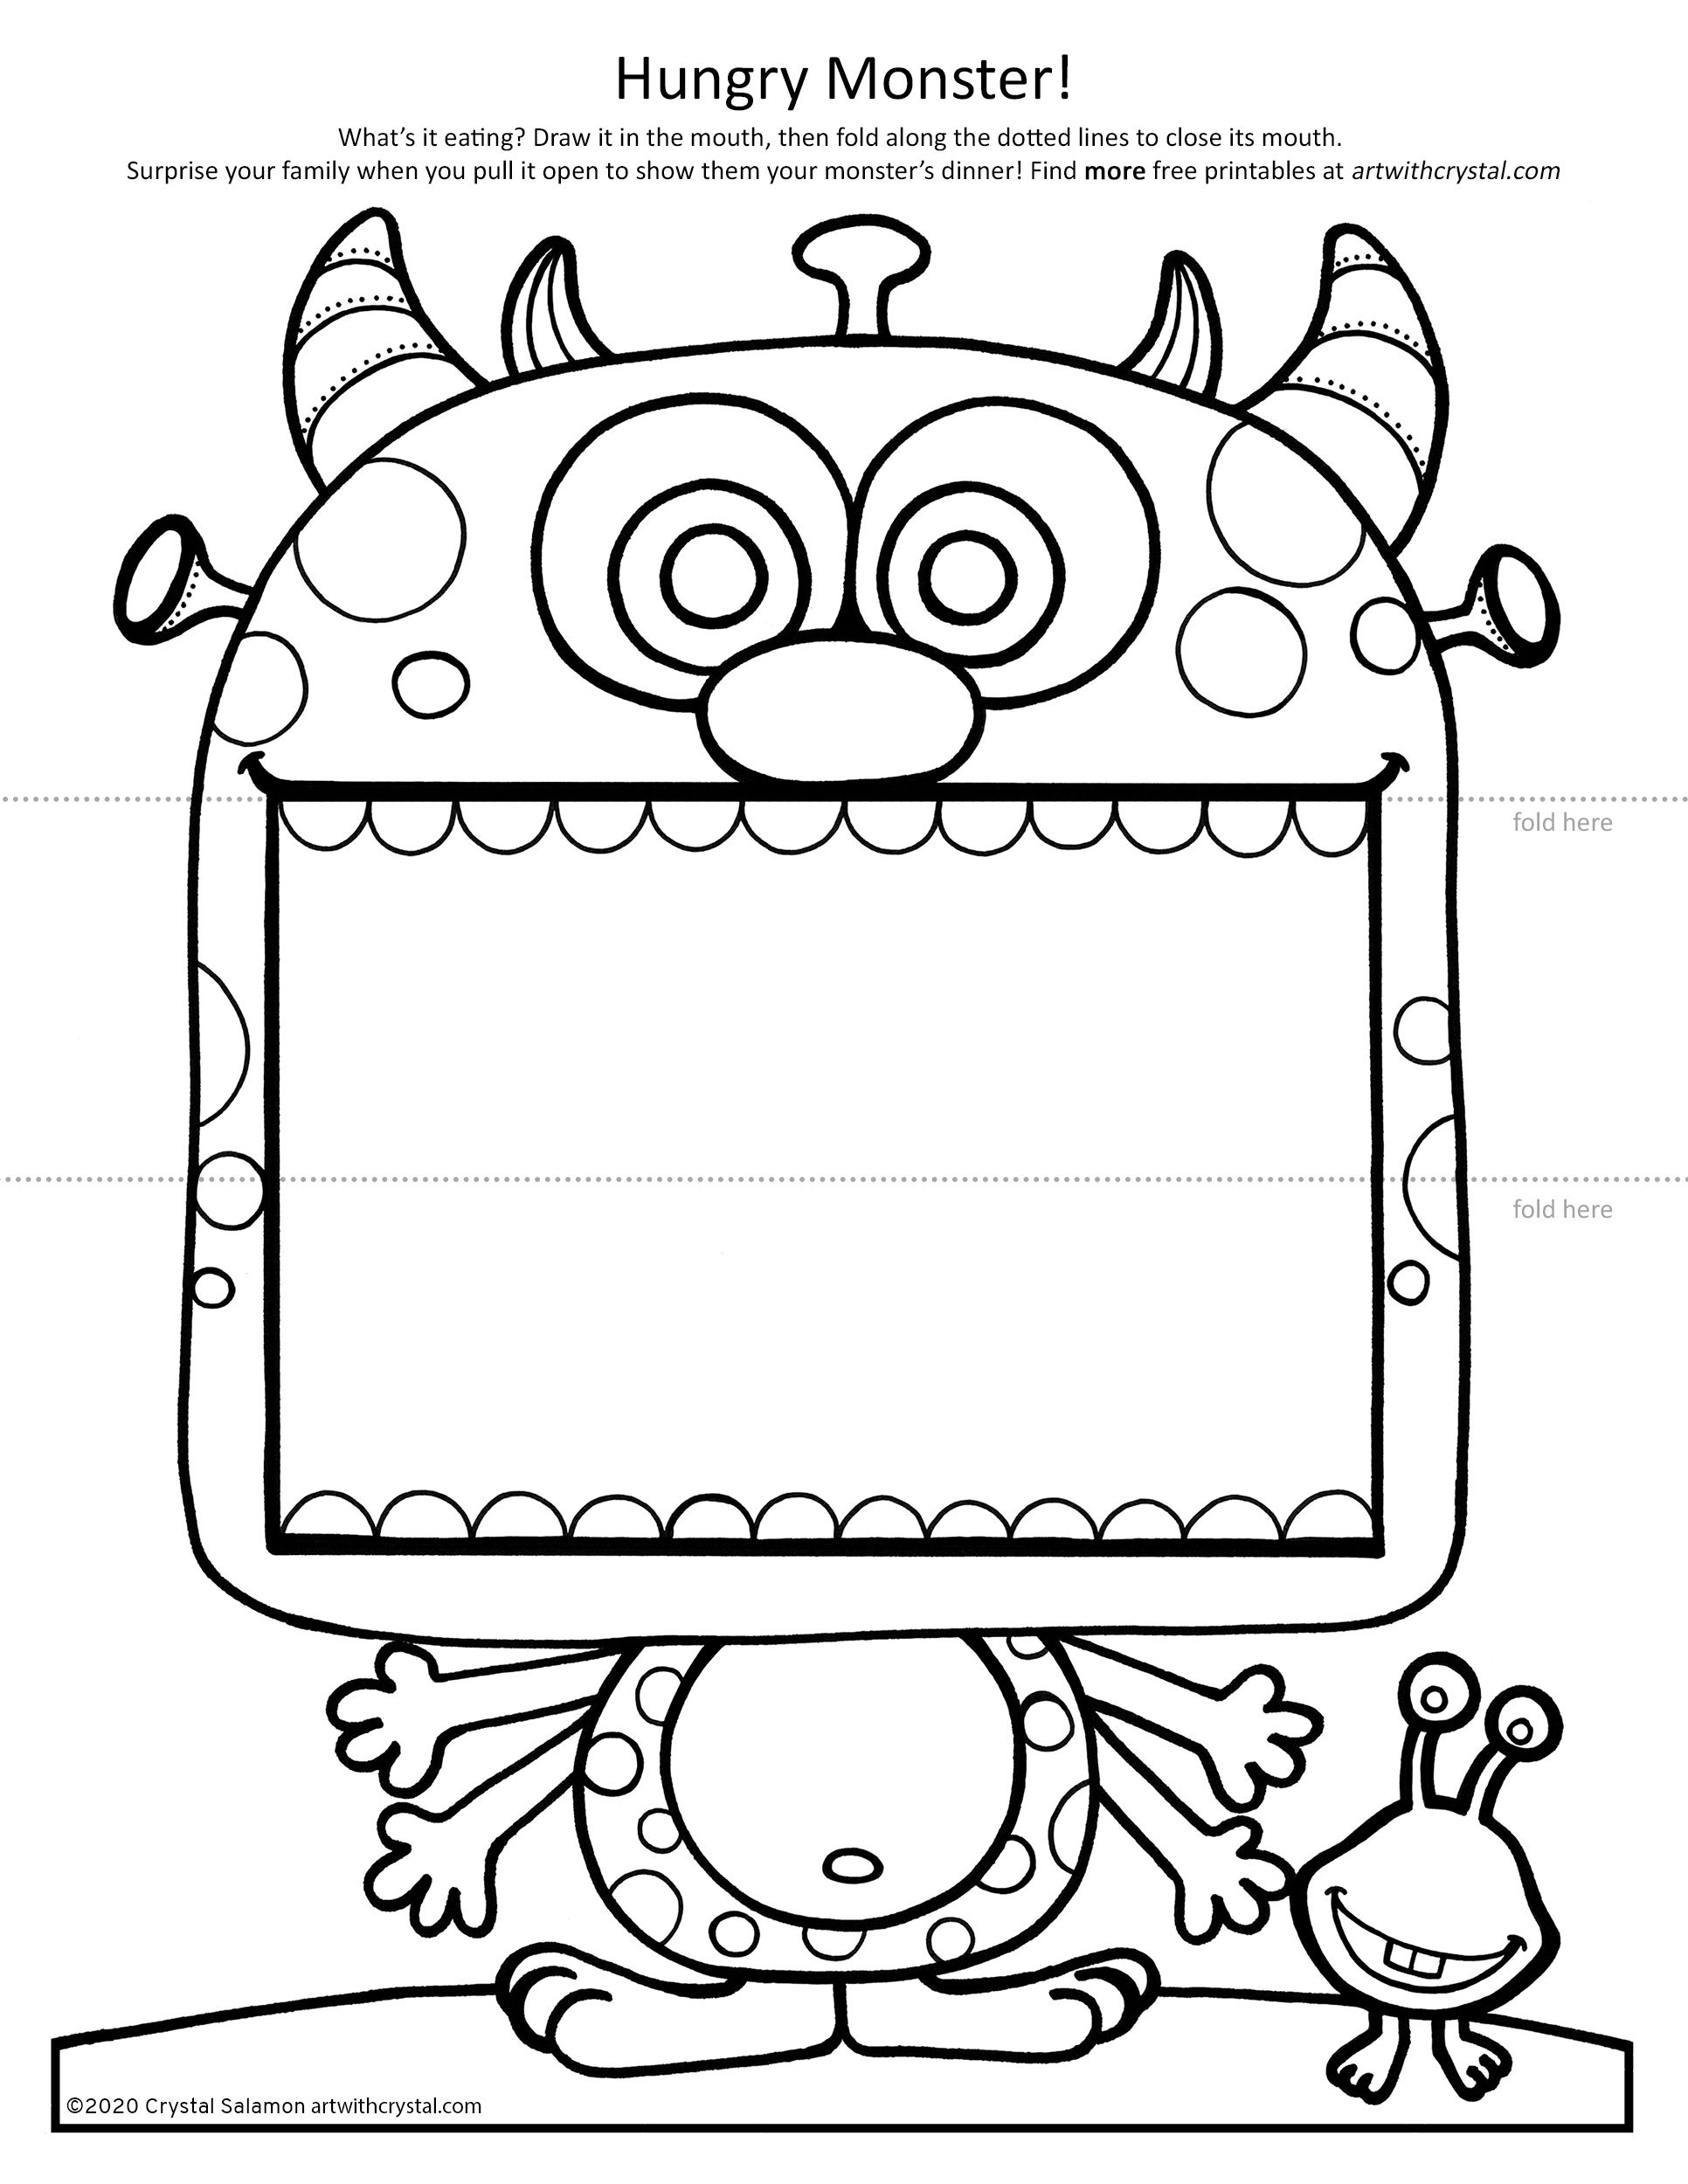 Big Mouth Monster Colouring Page Free Printable Art With Crystal In 2021 Monster Coloring Pages Kids Printable Coloring Pages Coloring Pages [ 2500 x 1932 Pixel ]